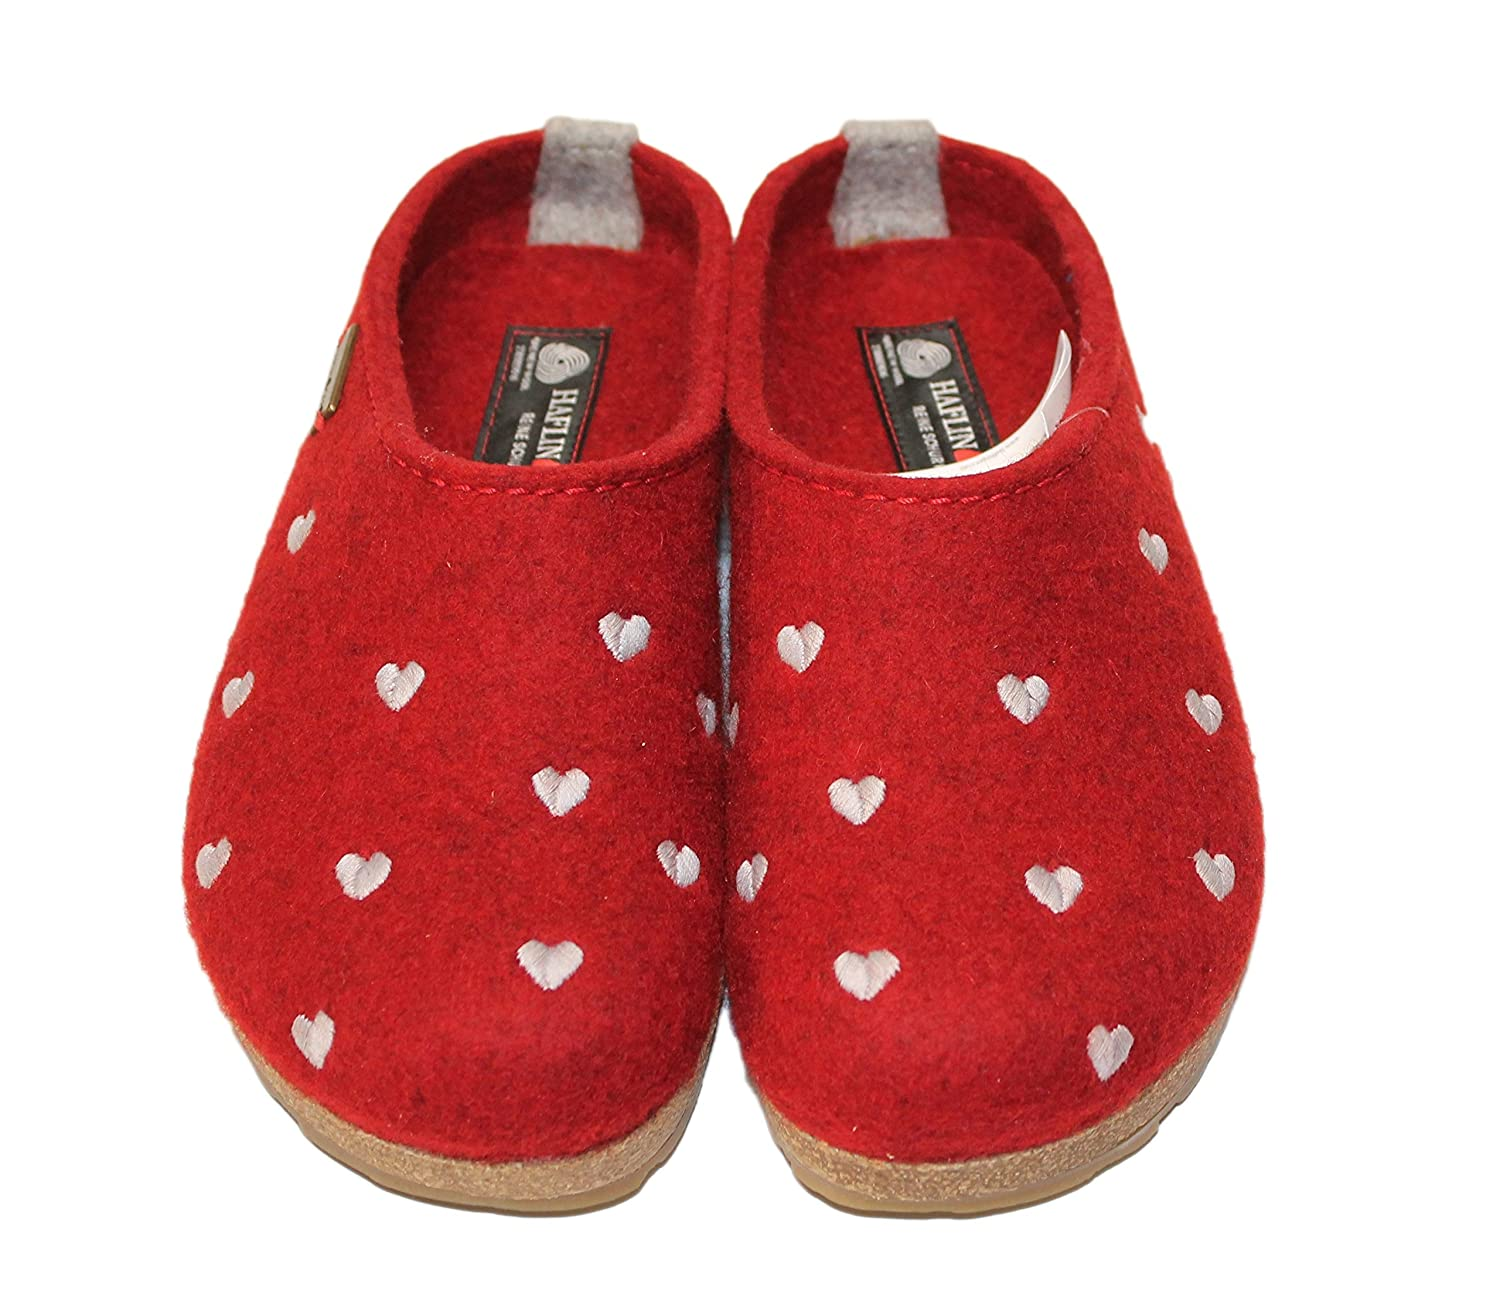 Haflinger Couriccini Femme Grizzly, 19221 Chaussons Couriccini Mules Femme Rouge 6791b83 - epictionpvp.space